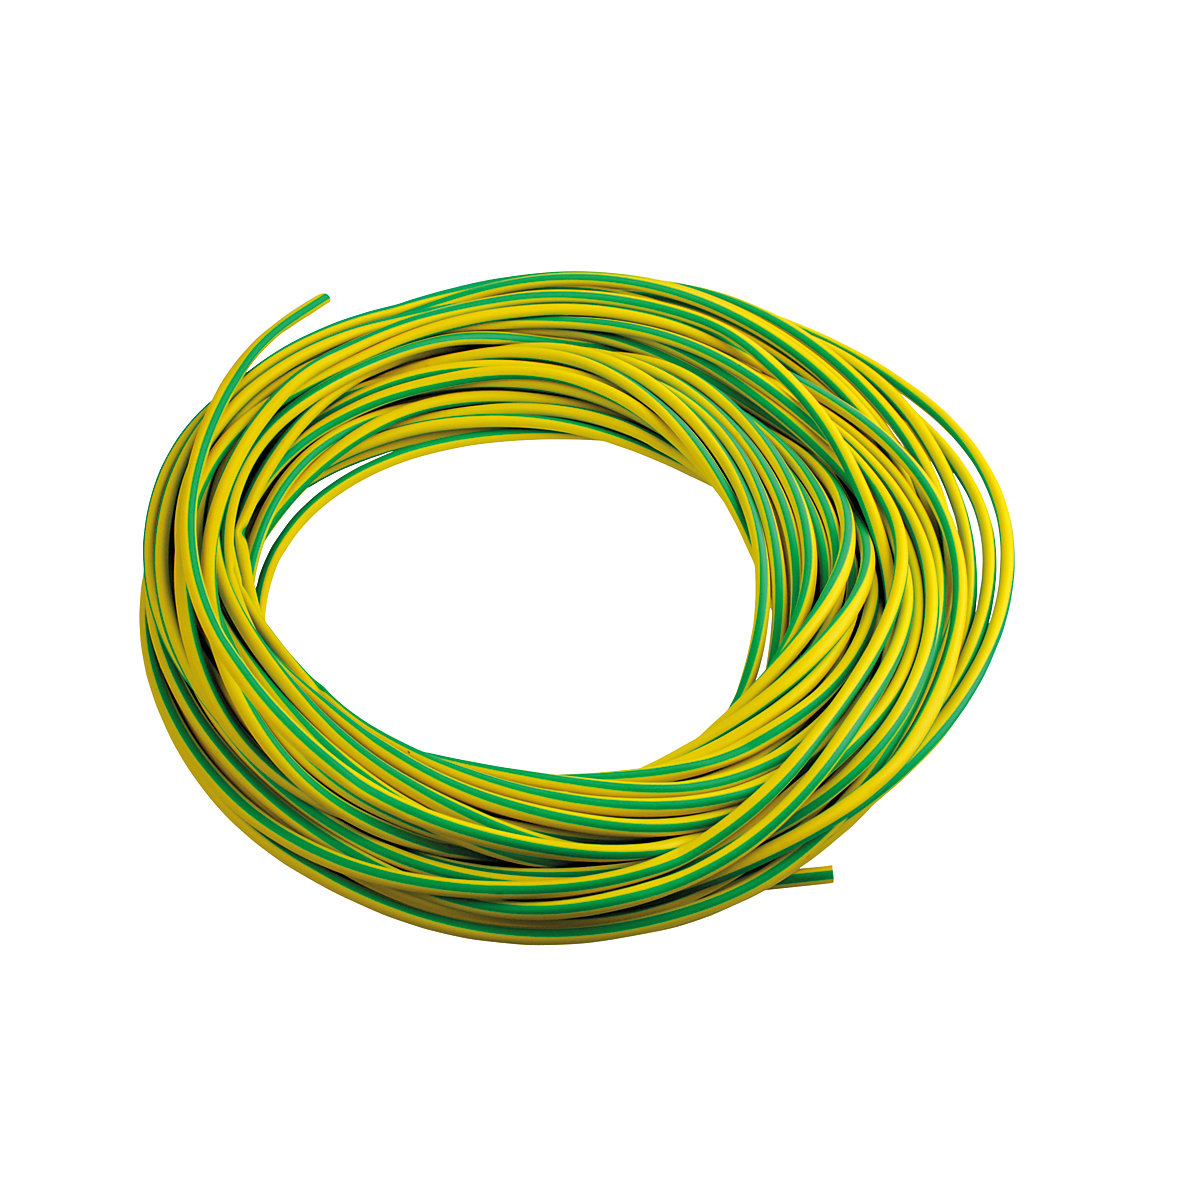 4TRADE Earth Sleeving Green / Yellow 25m | Travis Perkins